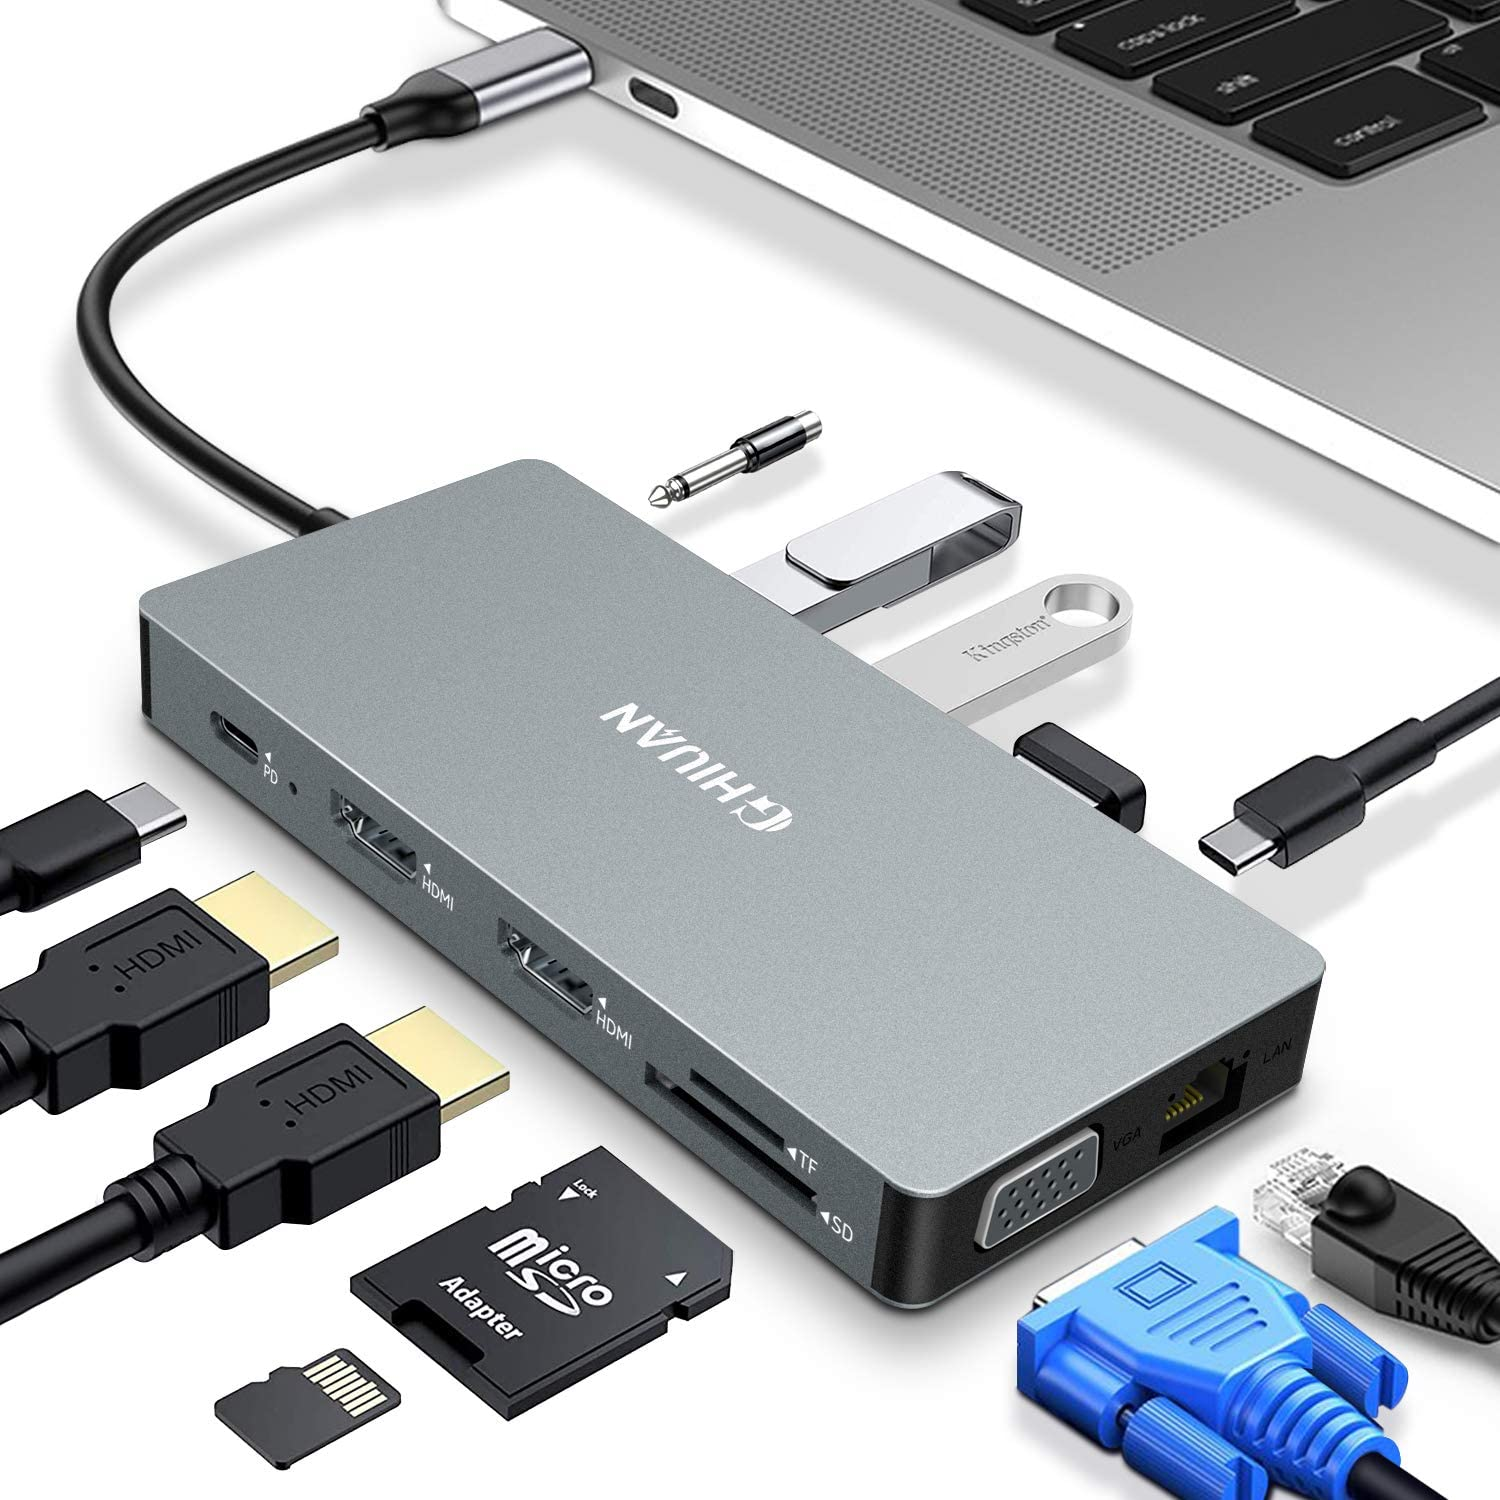 GHIUAN 12 in 1 Multiport USB C Hub Docking Station Dual 4K HDMI Monitor. Type C Adapter Compatible with MacBook Pro Air 2019 2020 Windows Laptop